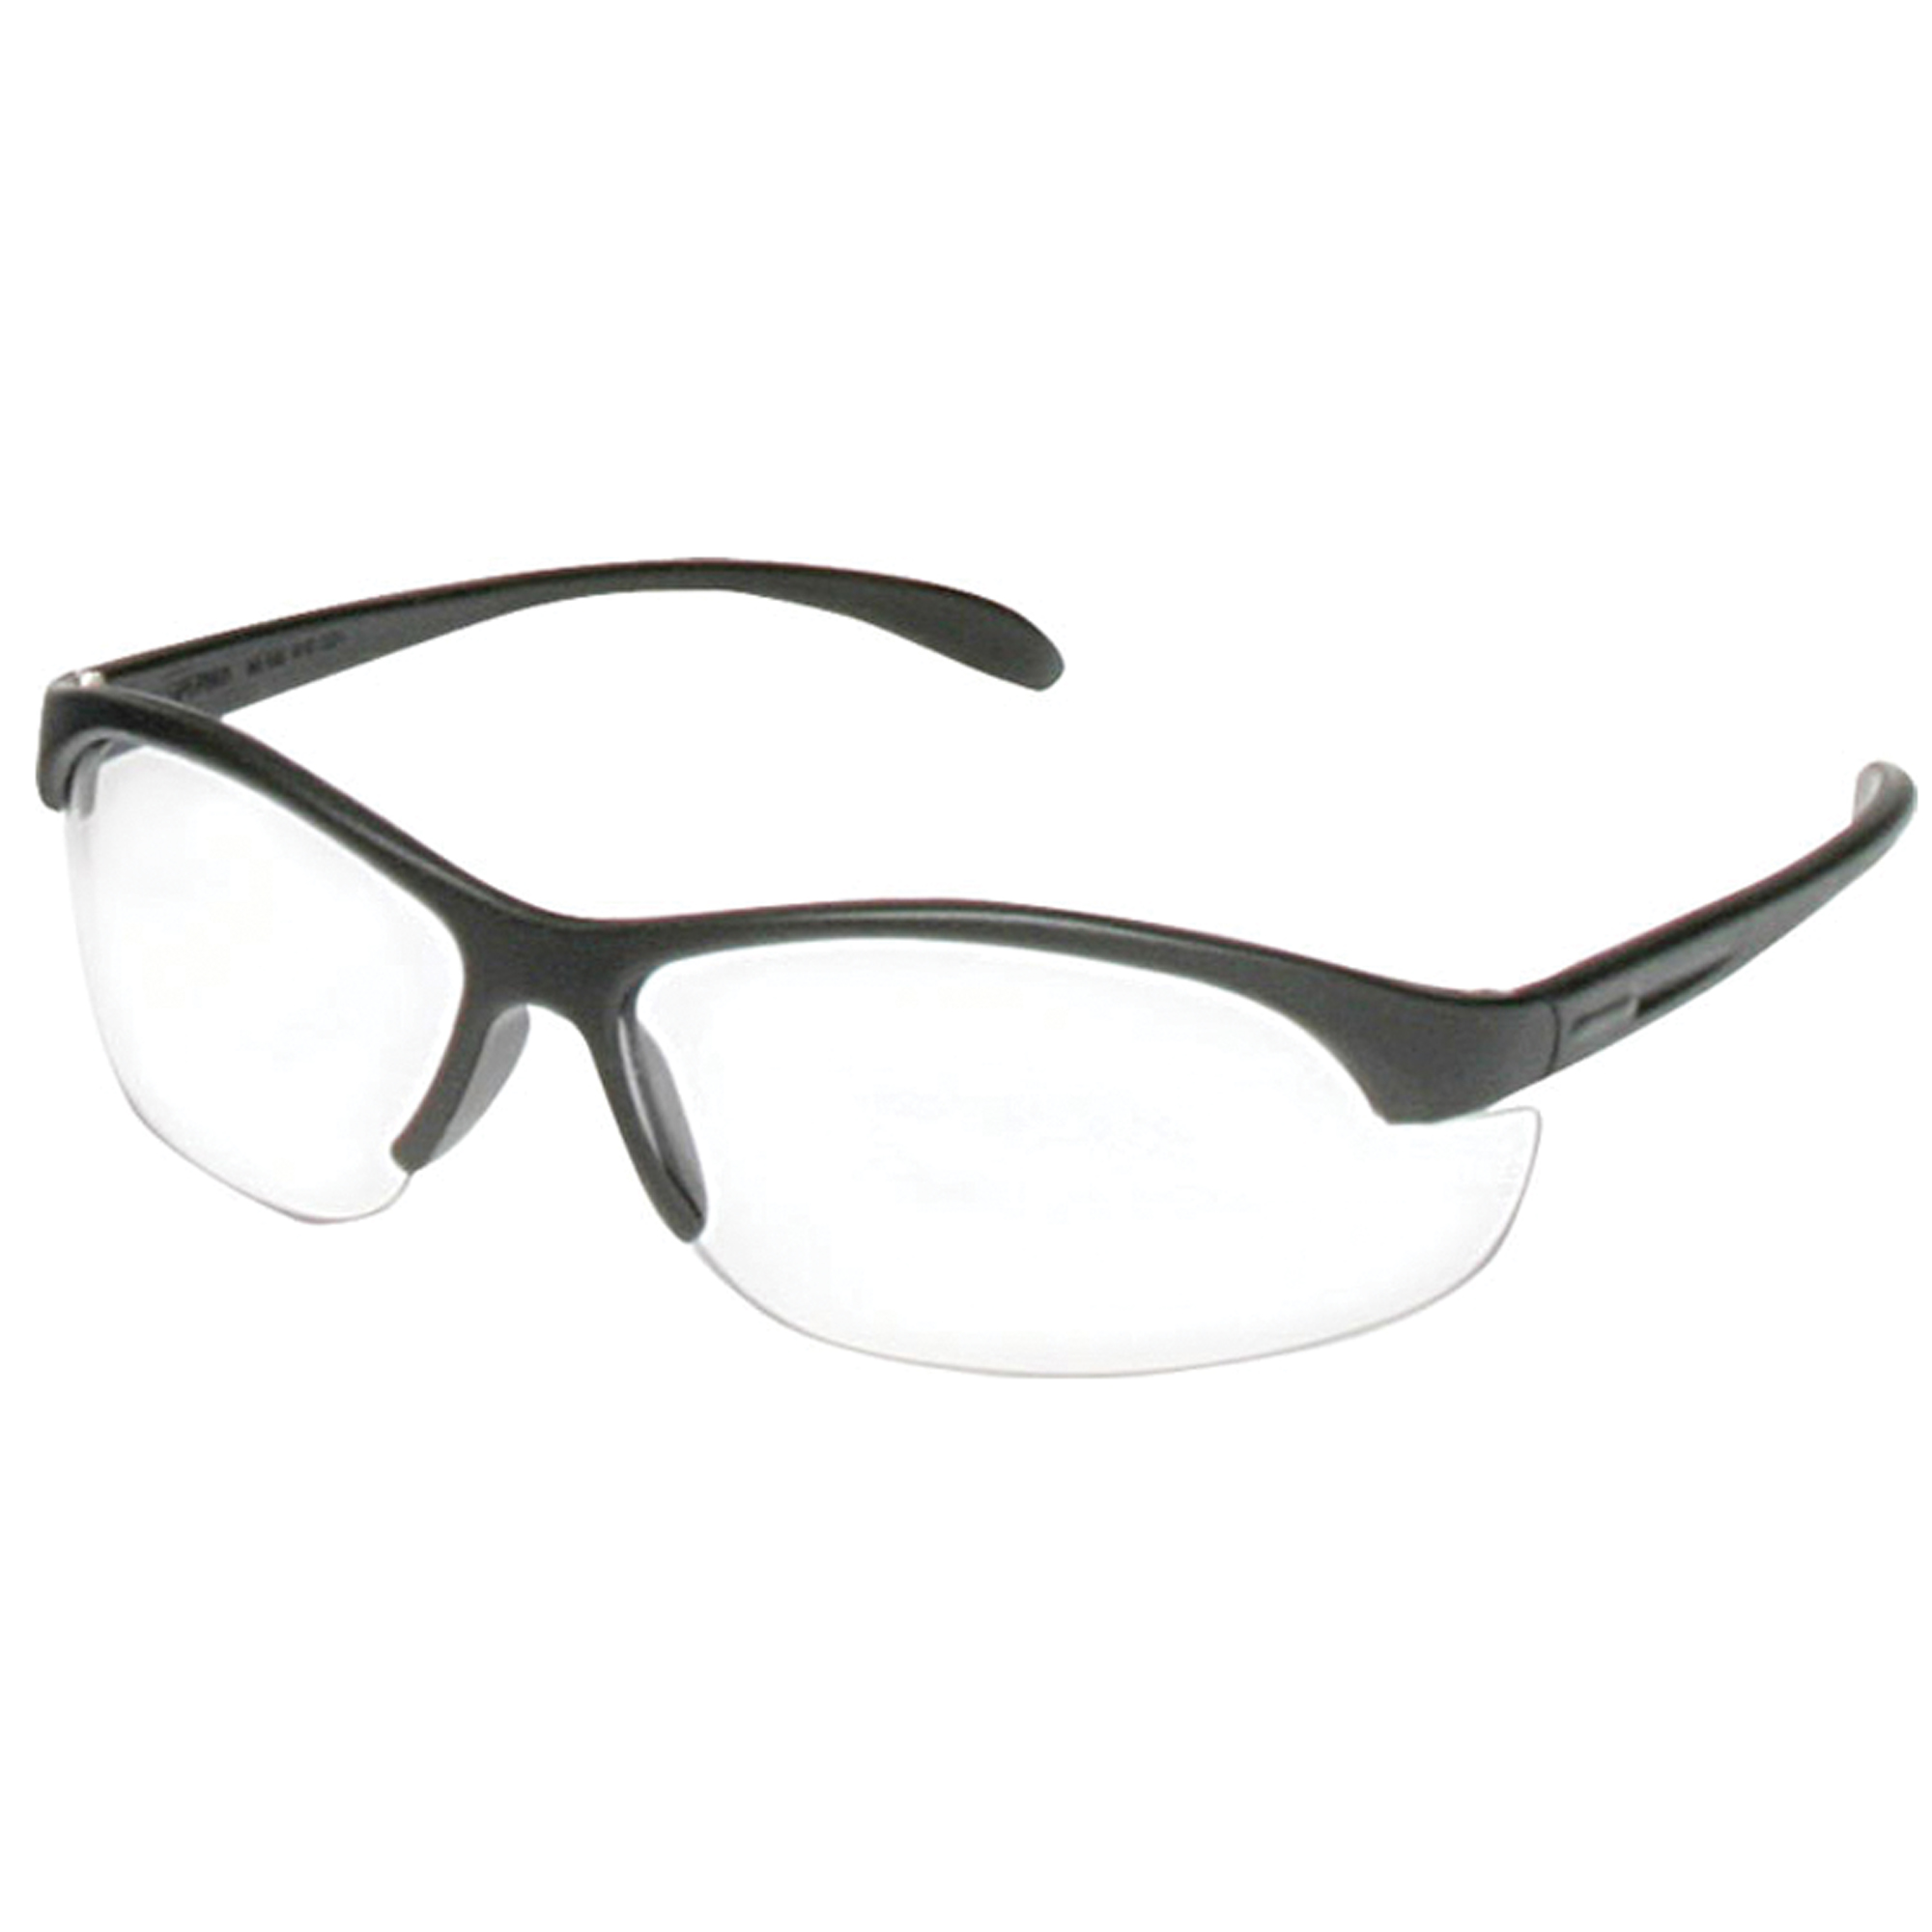 """Howard Leight Youth Safety Glasses feature a lightweight wrap-around lens design"""" giving these safety glasses substantial coverage and a distortion-free 180 degree field of vision. The universal nose bridge and soft temple tips provide a comfortable fit."""